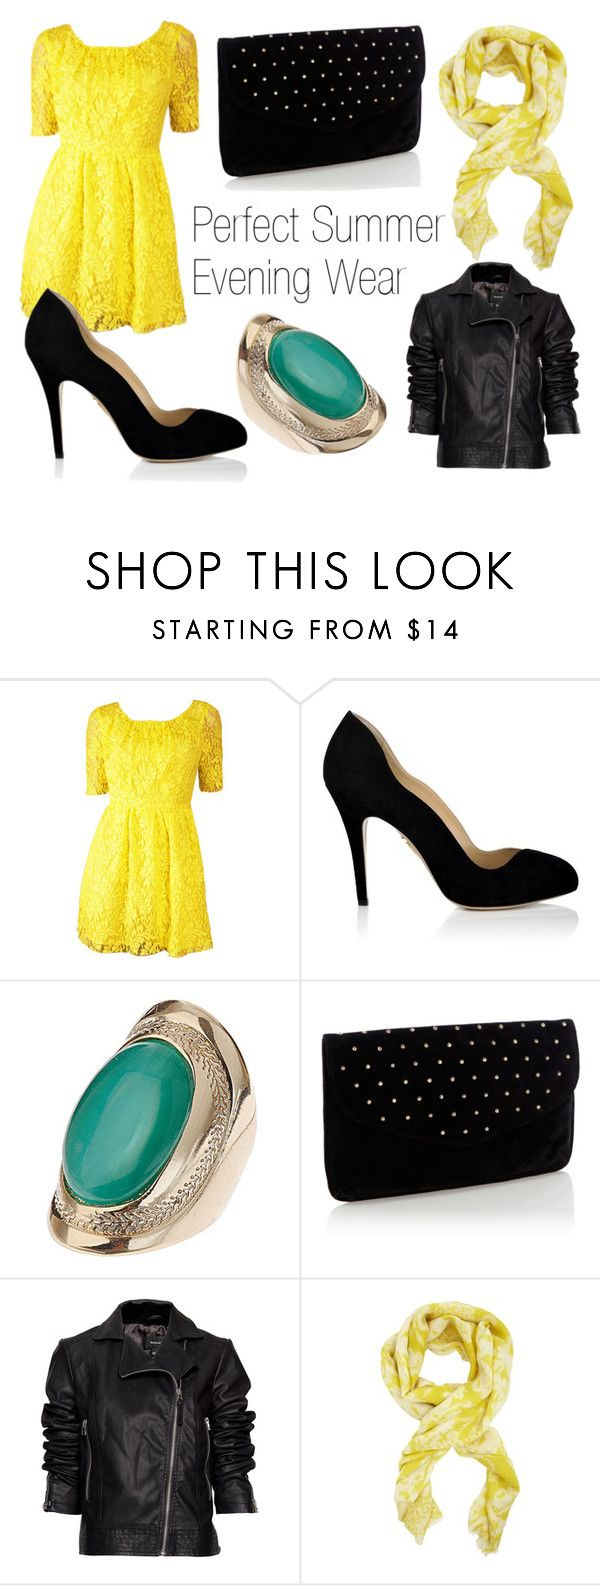 """Summer Evening Wear"" by henriette-runa-larsen ❤ liked on Polyvore featuring Charlotte Olympia, Dorothy Perkins, Oasis, MANGO and BCBGMAXAZRIA"